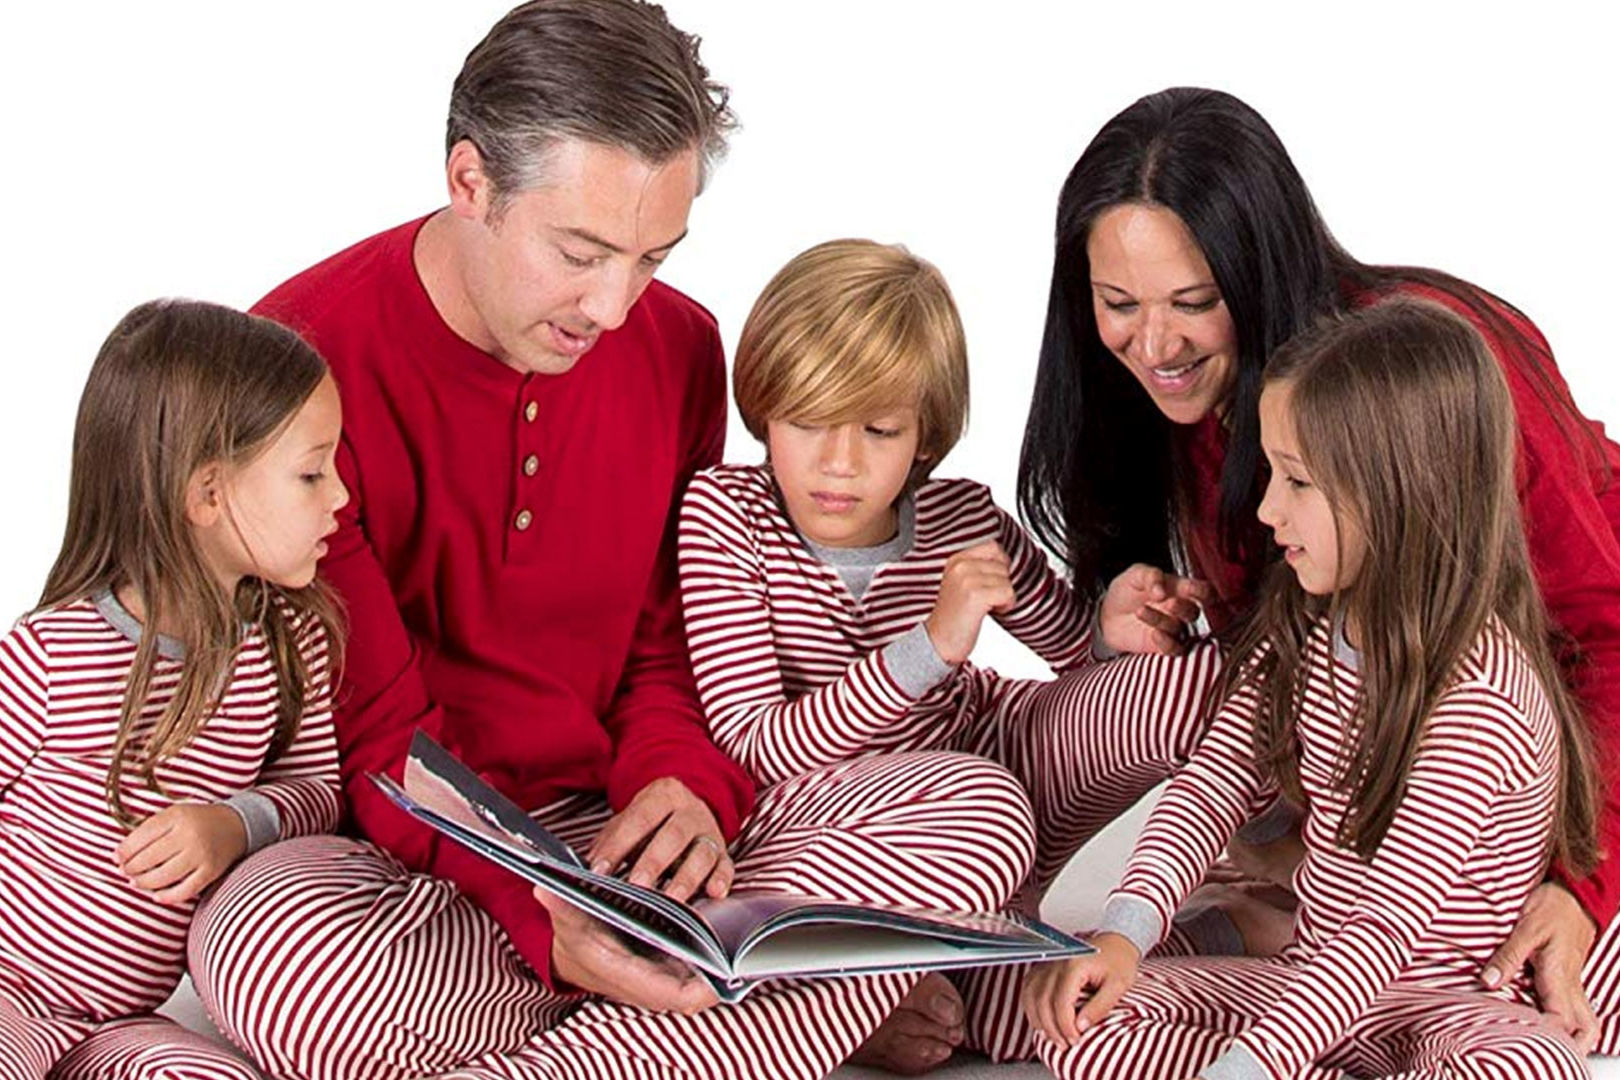 You Can Buy Crew Gaines' Adorable Christmas Pajamas for the Whole Family